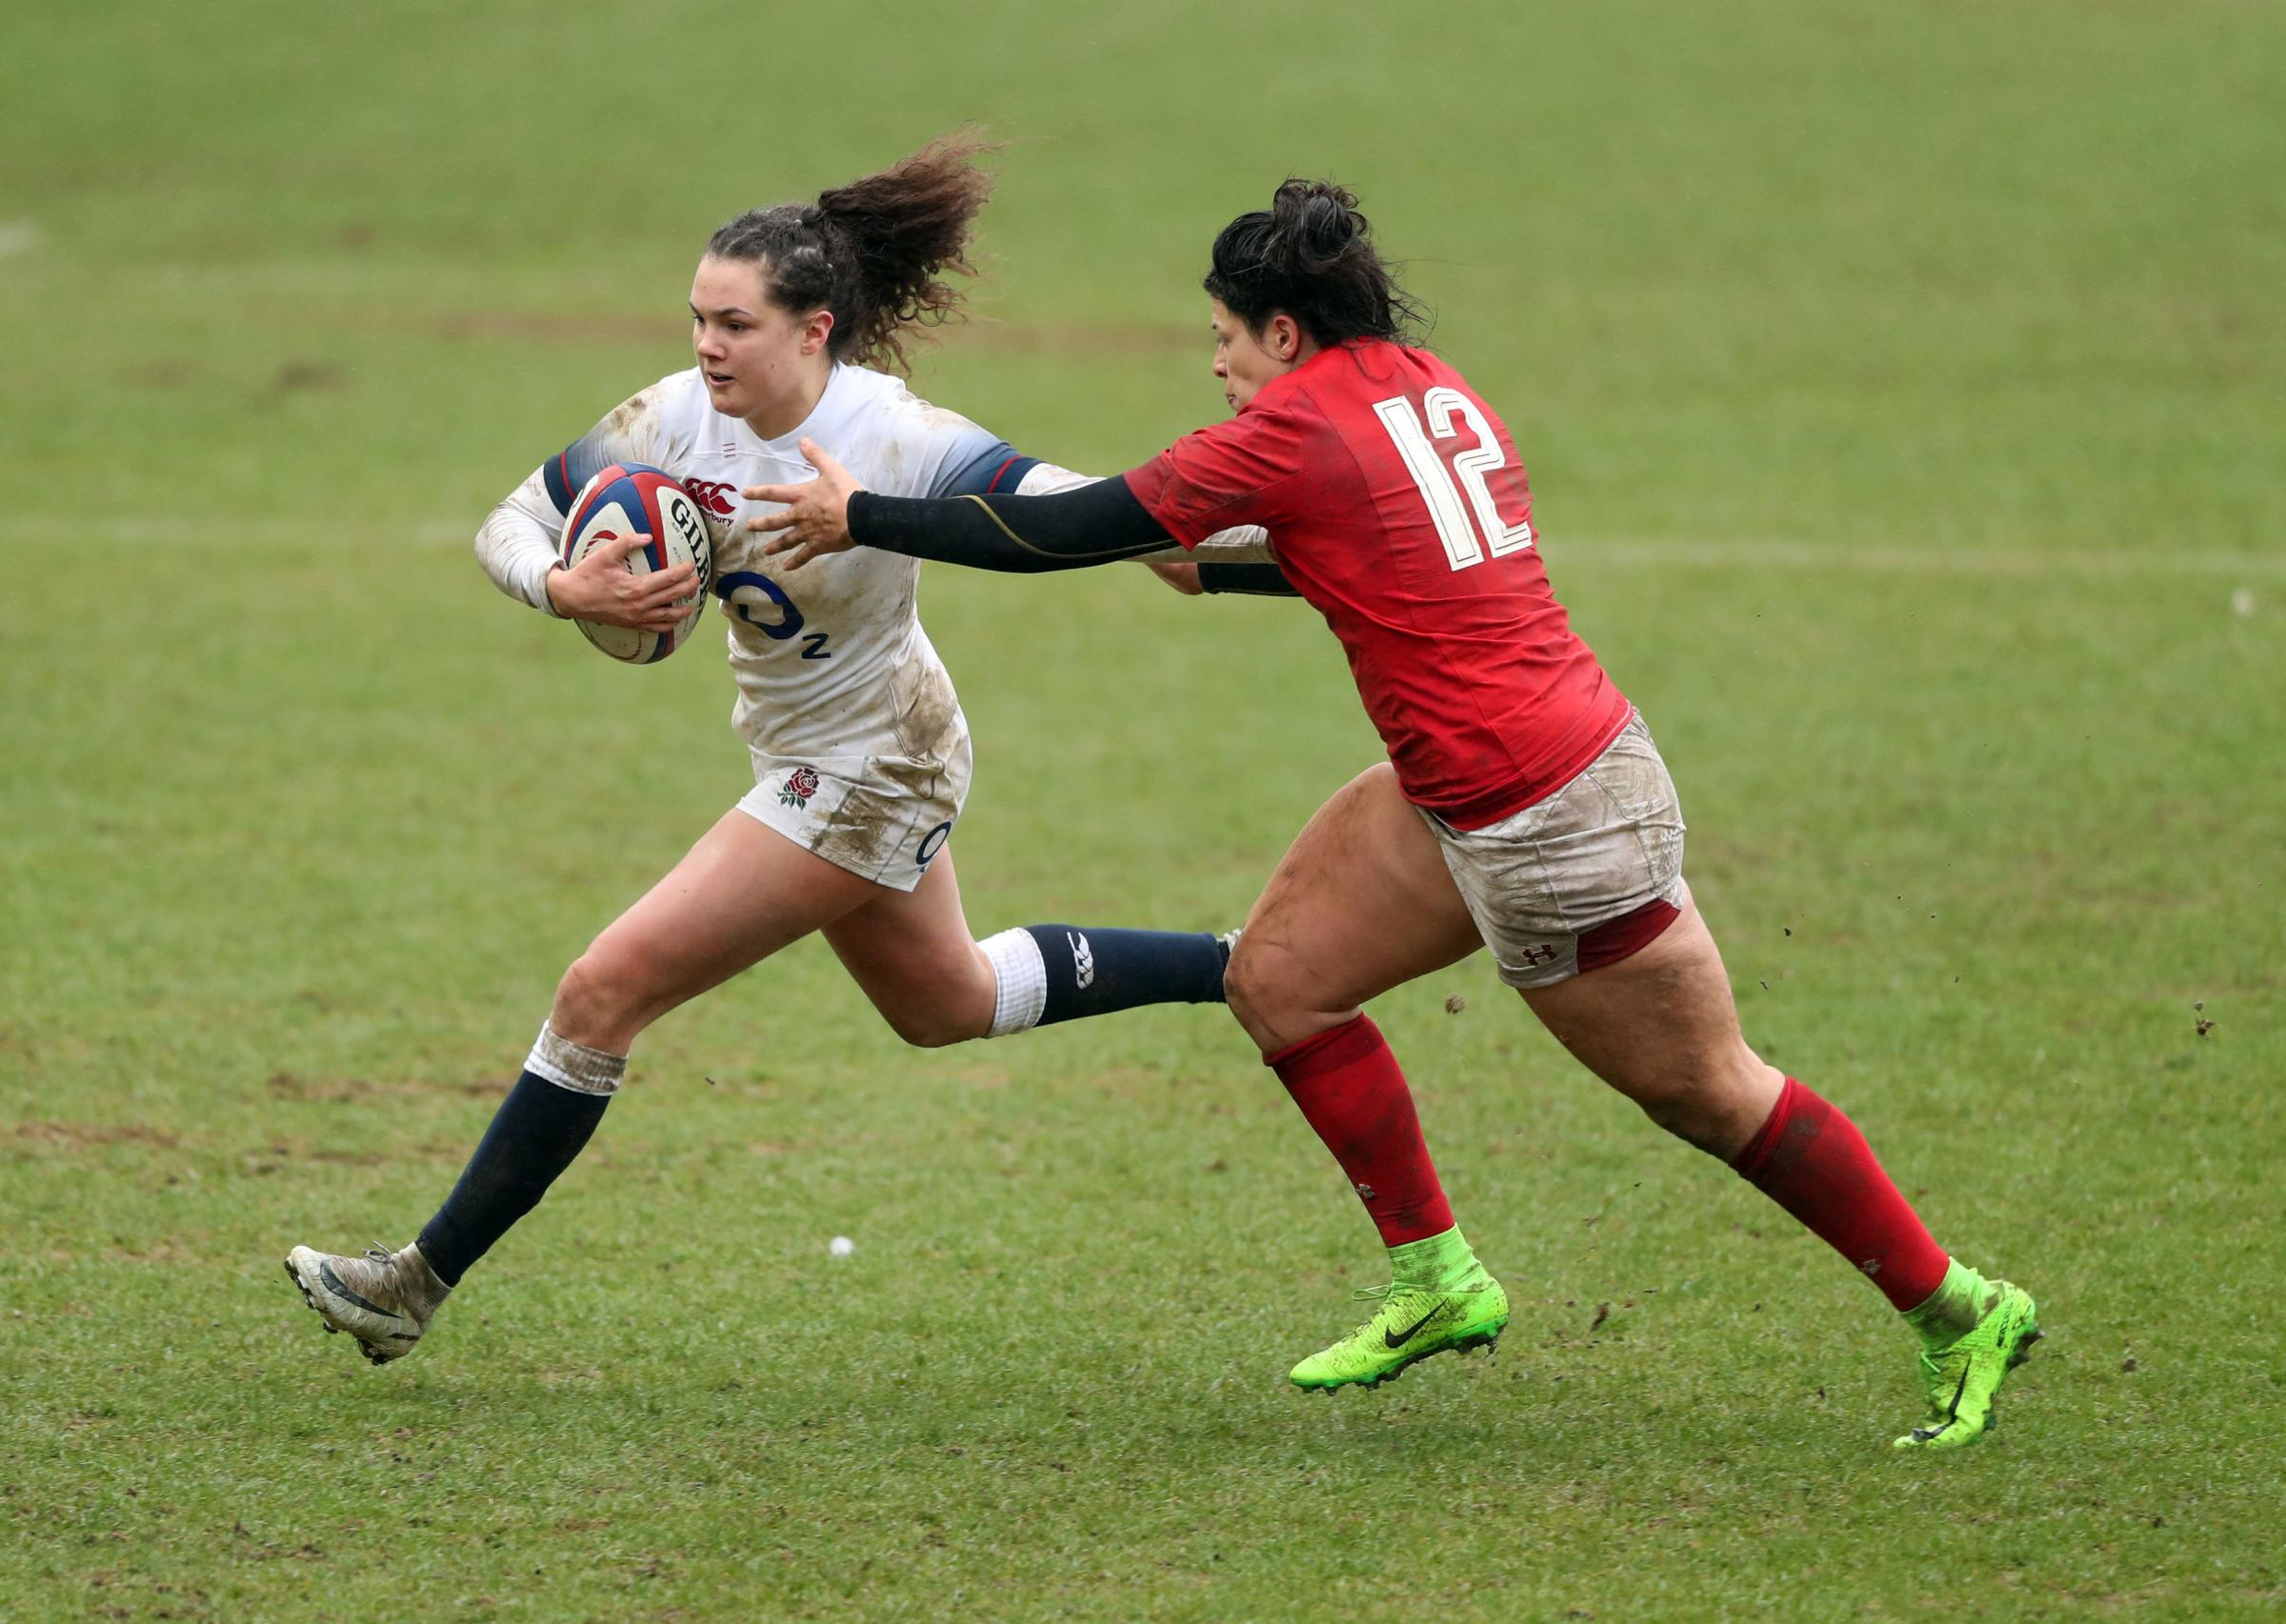 England's Ellie Kildunne races past her Welsh opponent during the NatWest Women's 6 Nations match at Twickenham Stoop, London. Credit: Adam Davy/PA Wire.